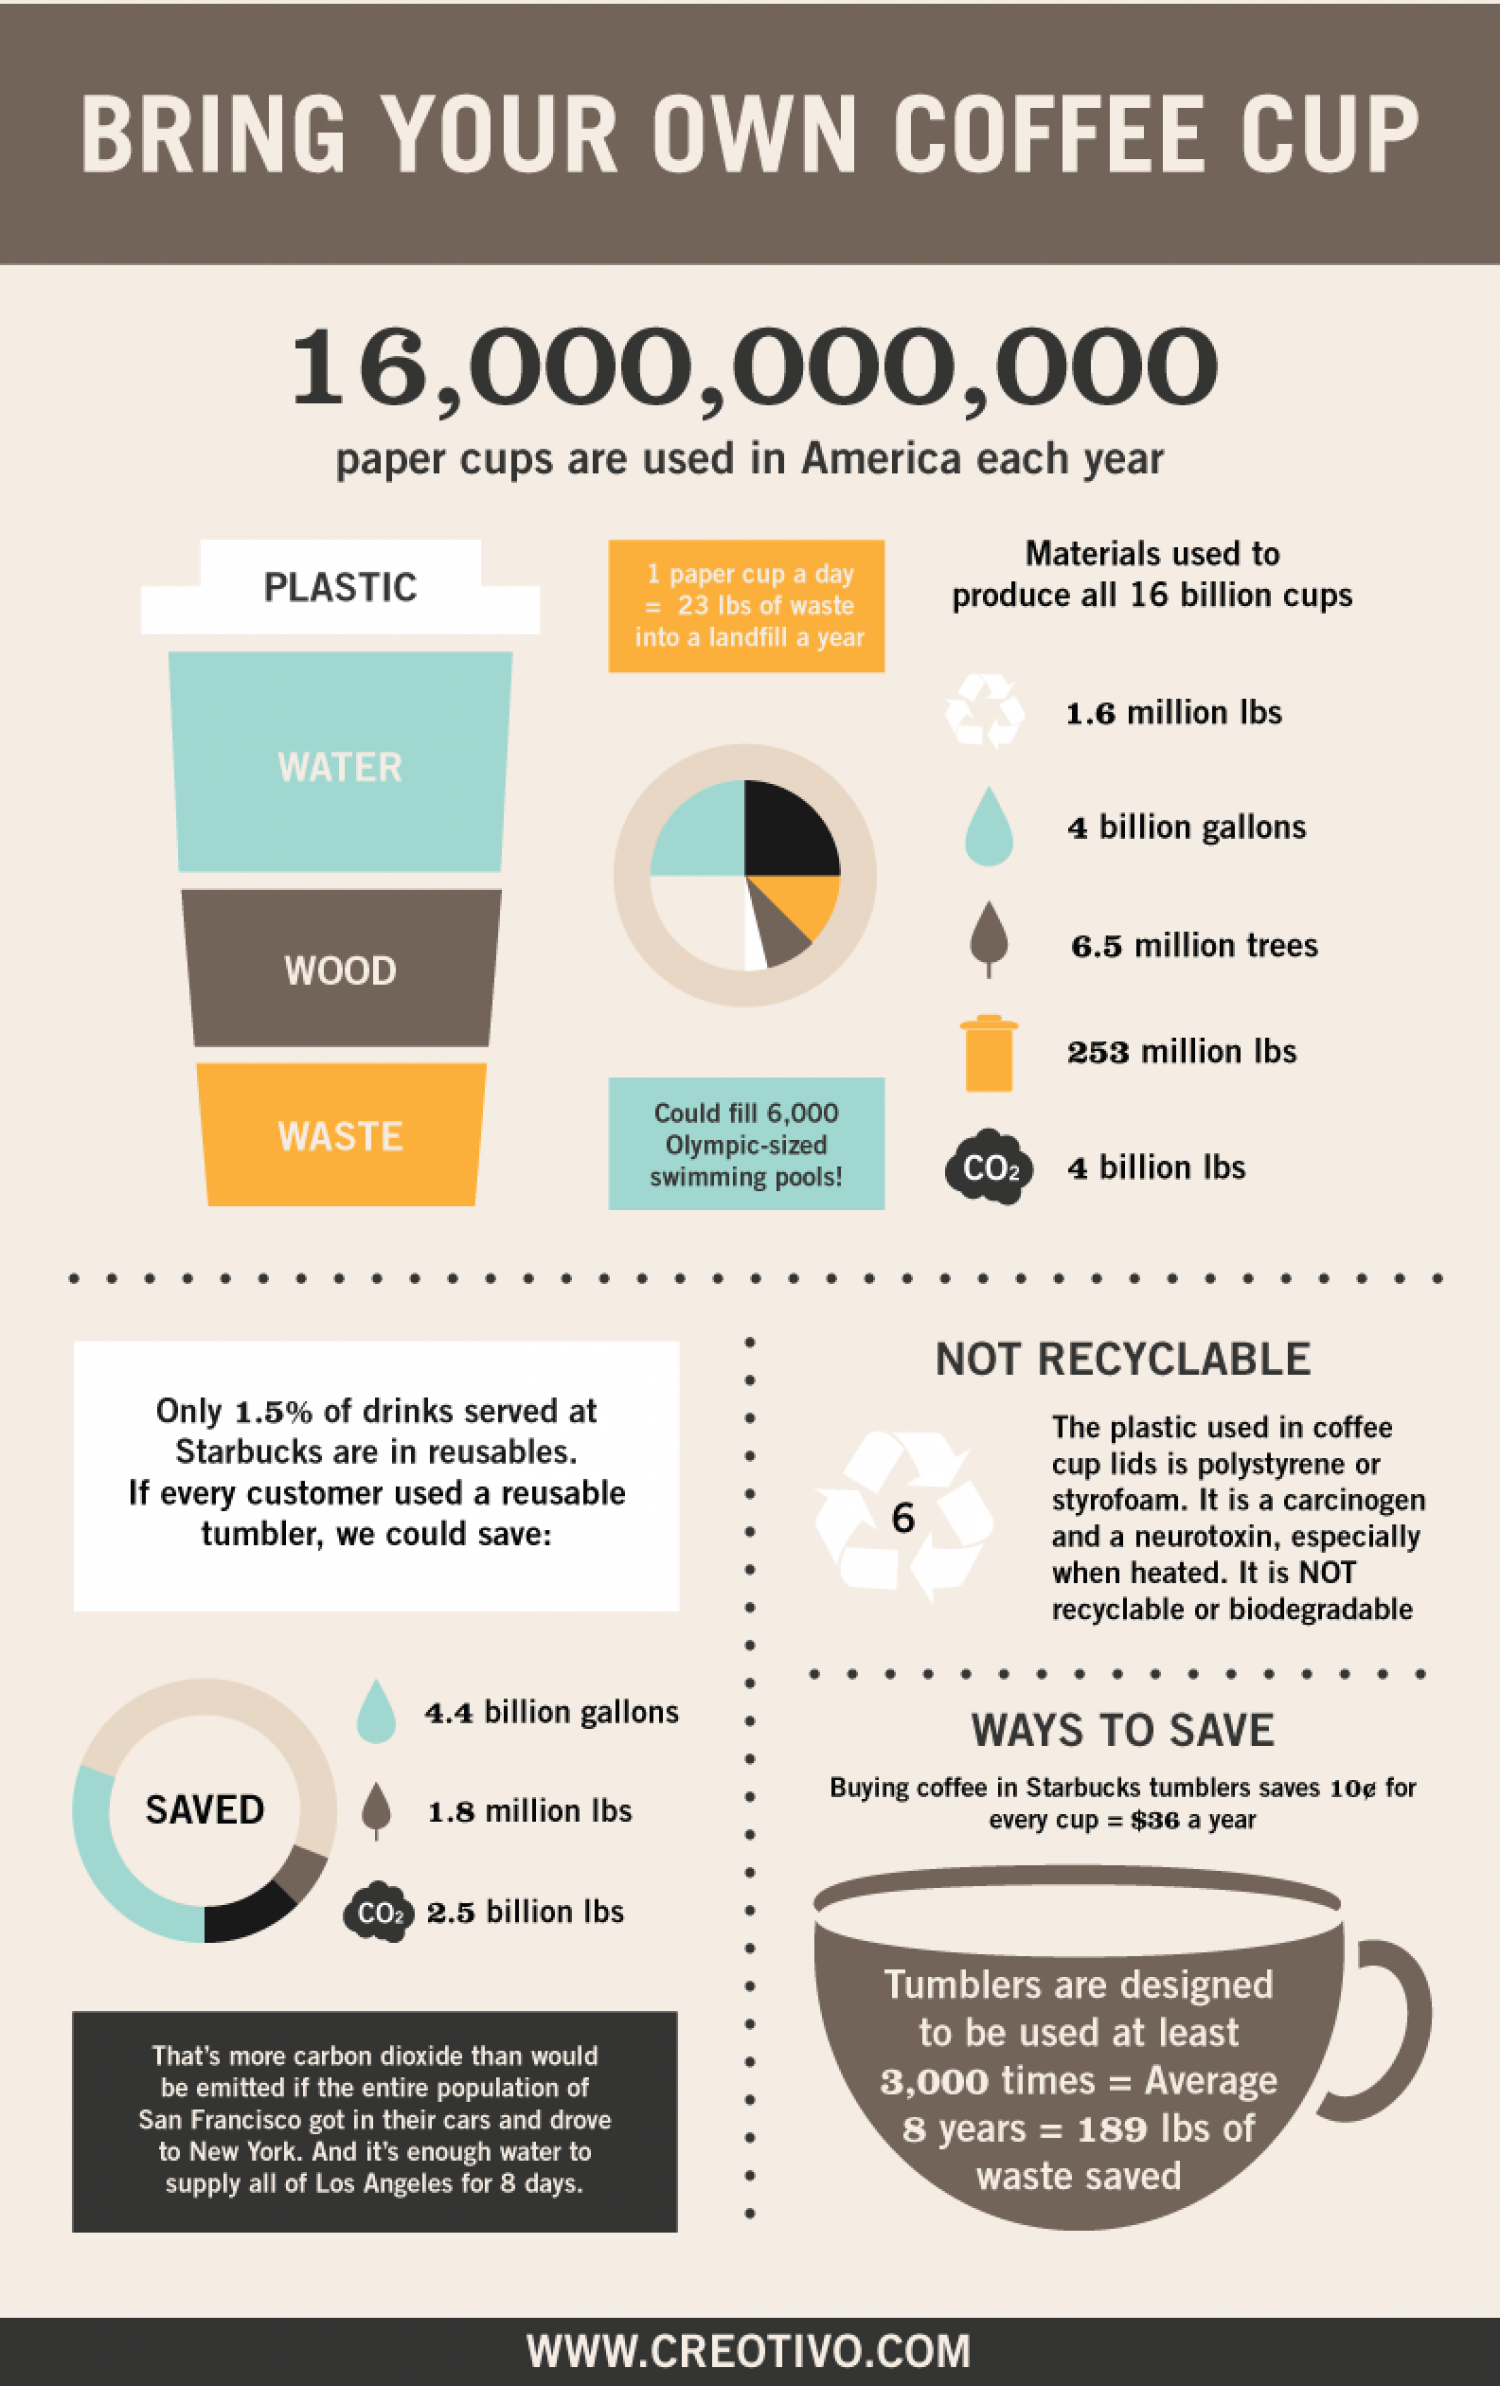 Bring your own coffee cup Infographic